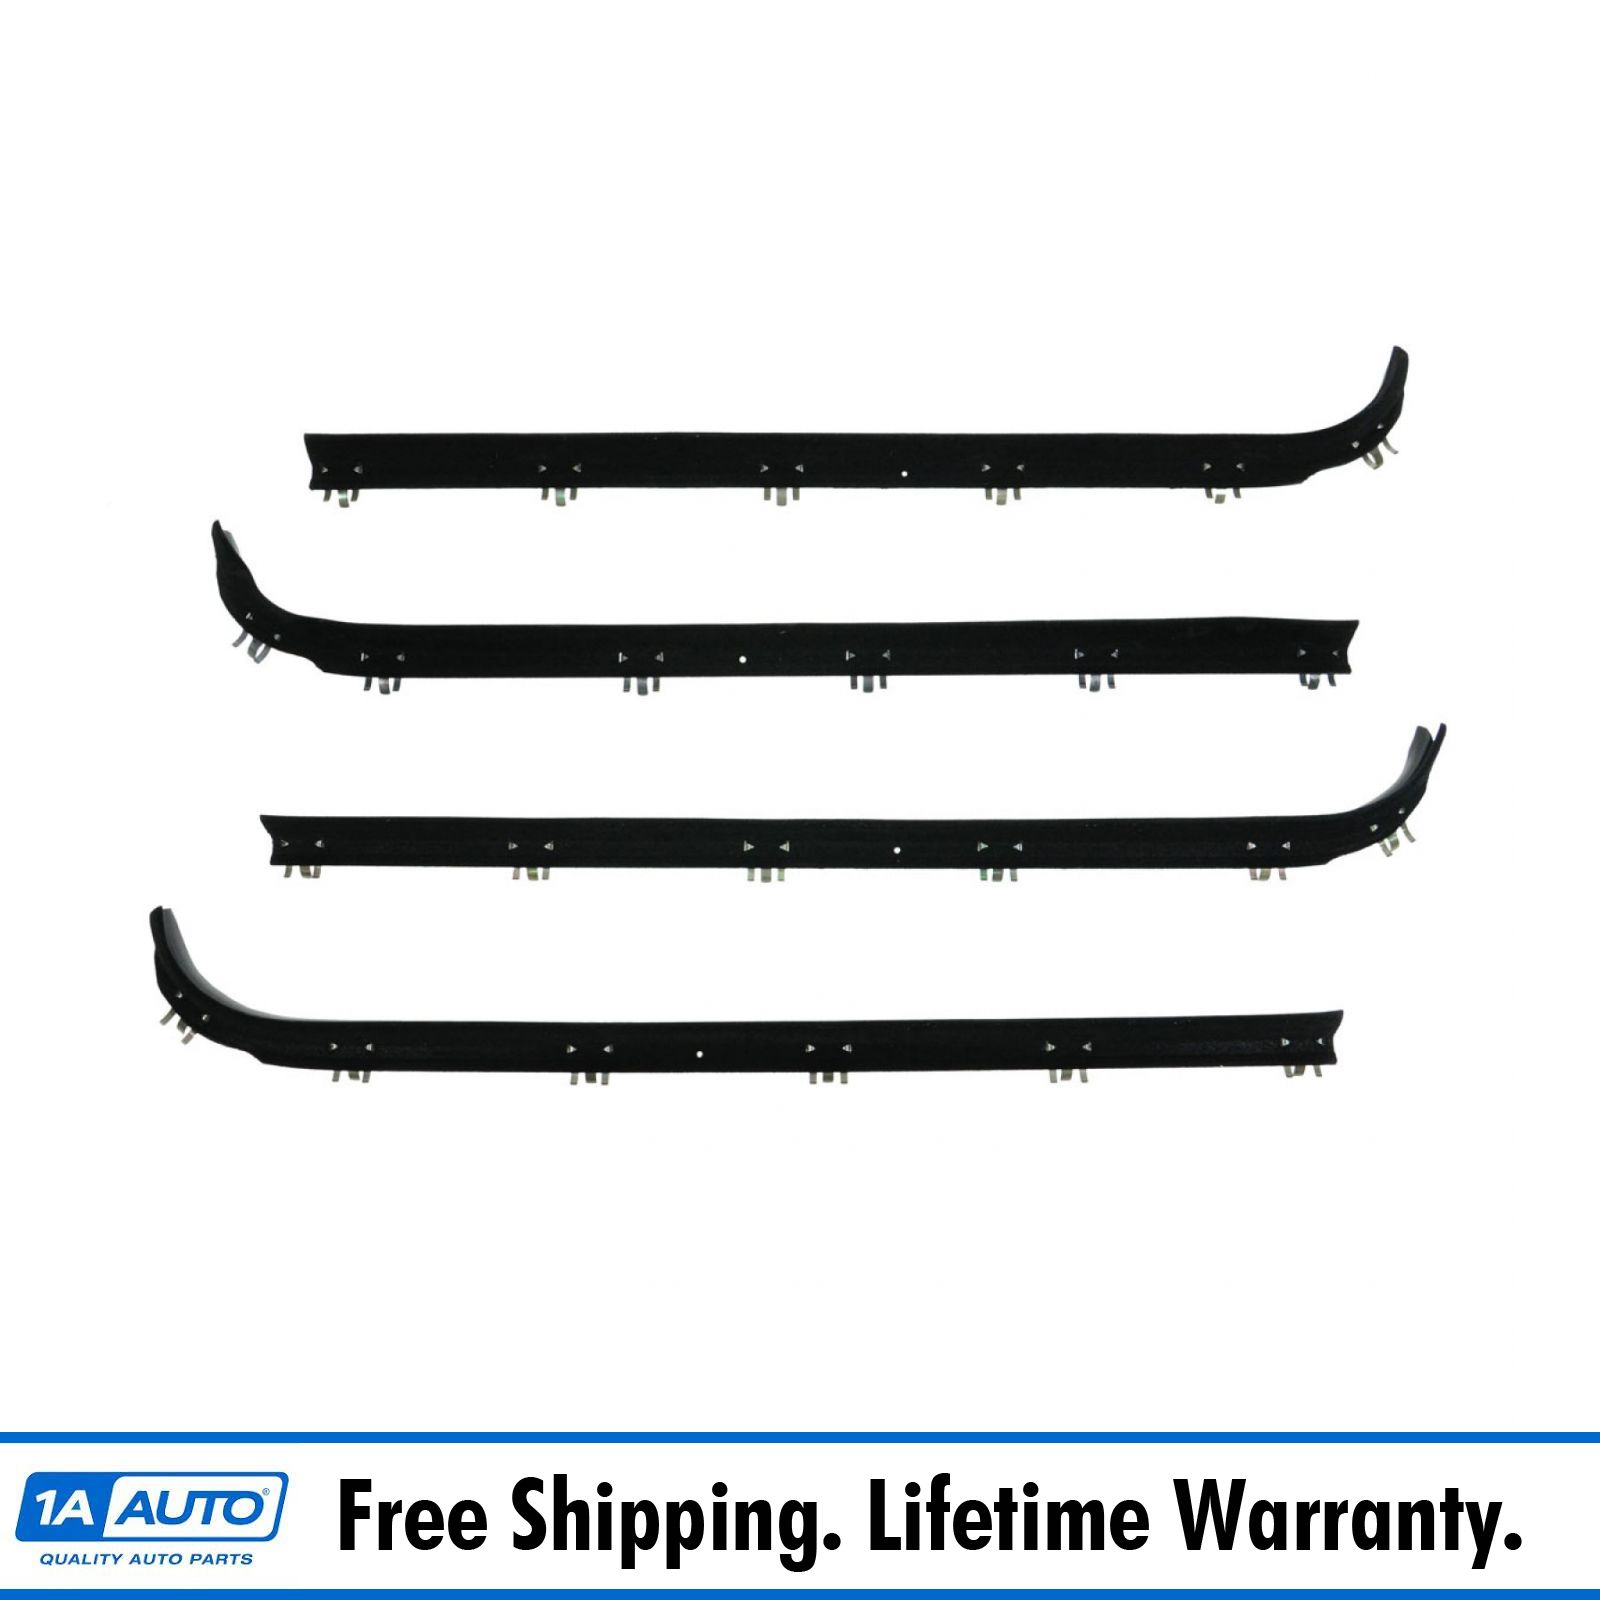 Details about Window Sweep Weatherstrip Seal Kit Set of 4 for 75-91 Ford  Econoline E Series